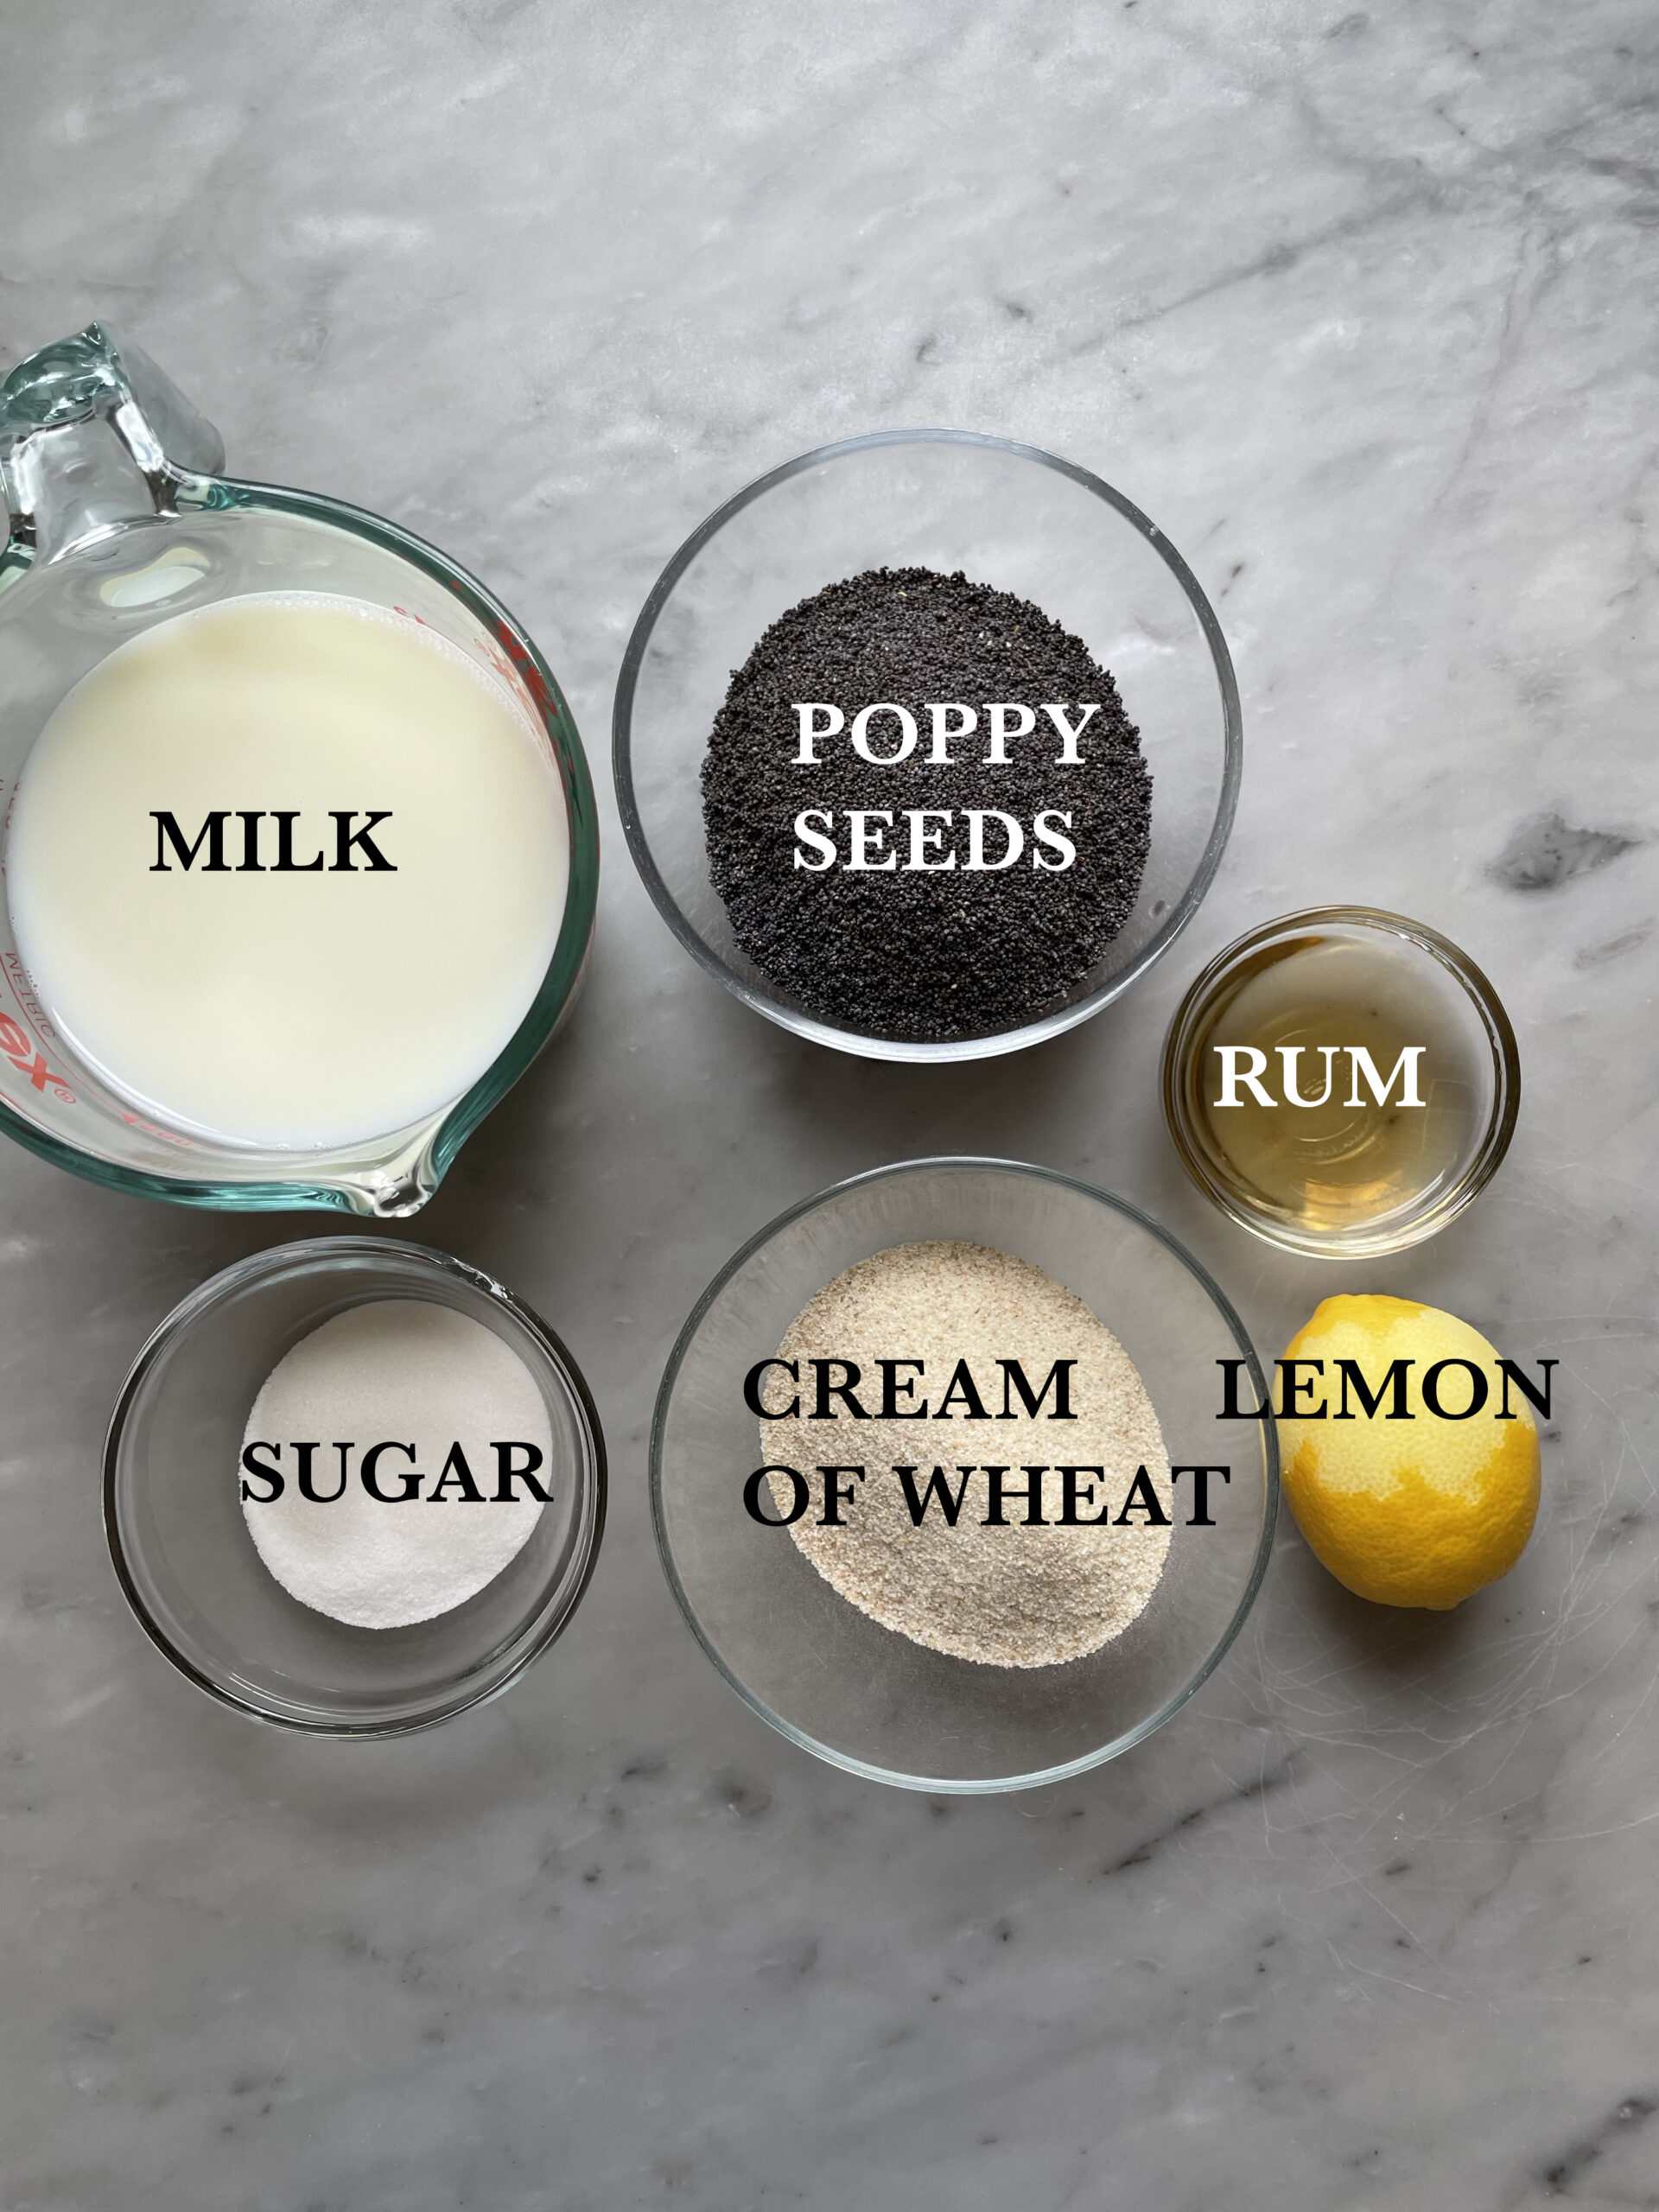 Image of the poppy seed filling ingredients.